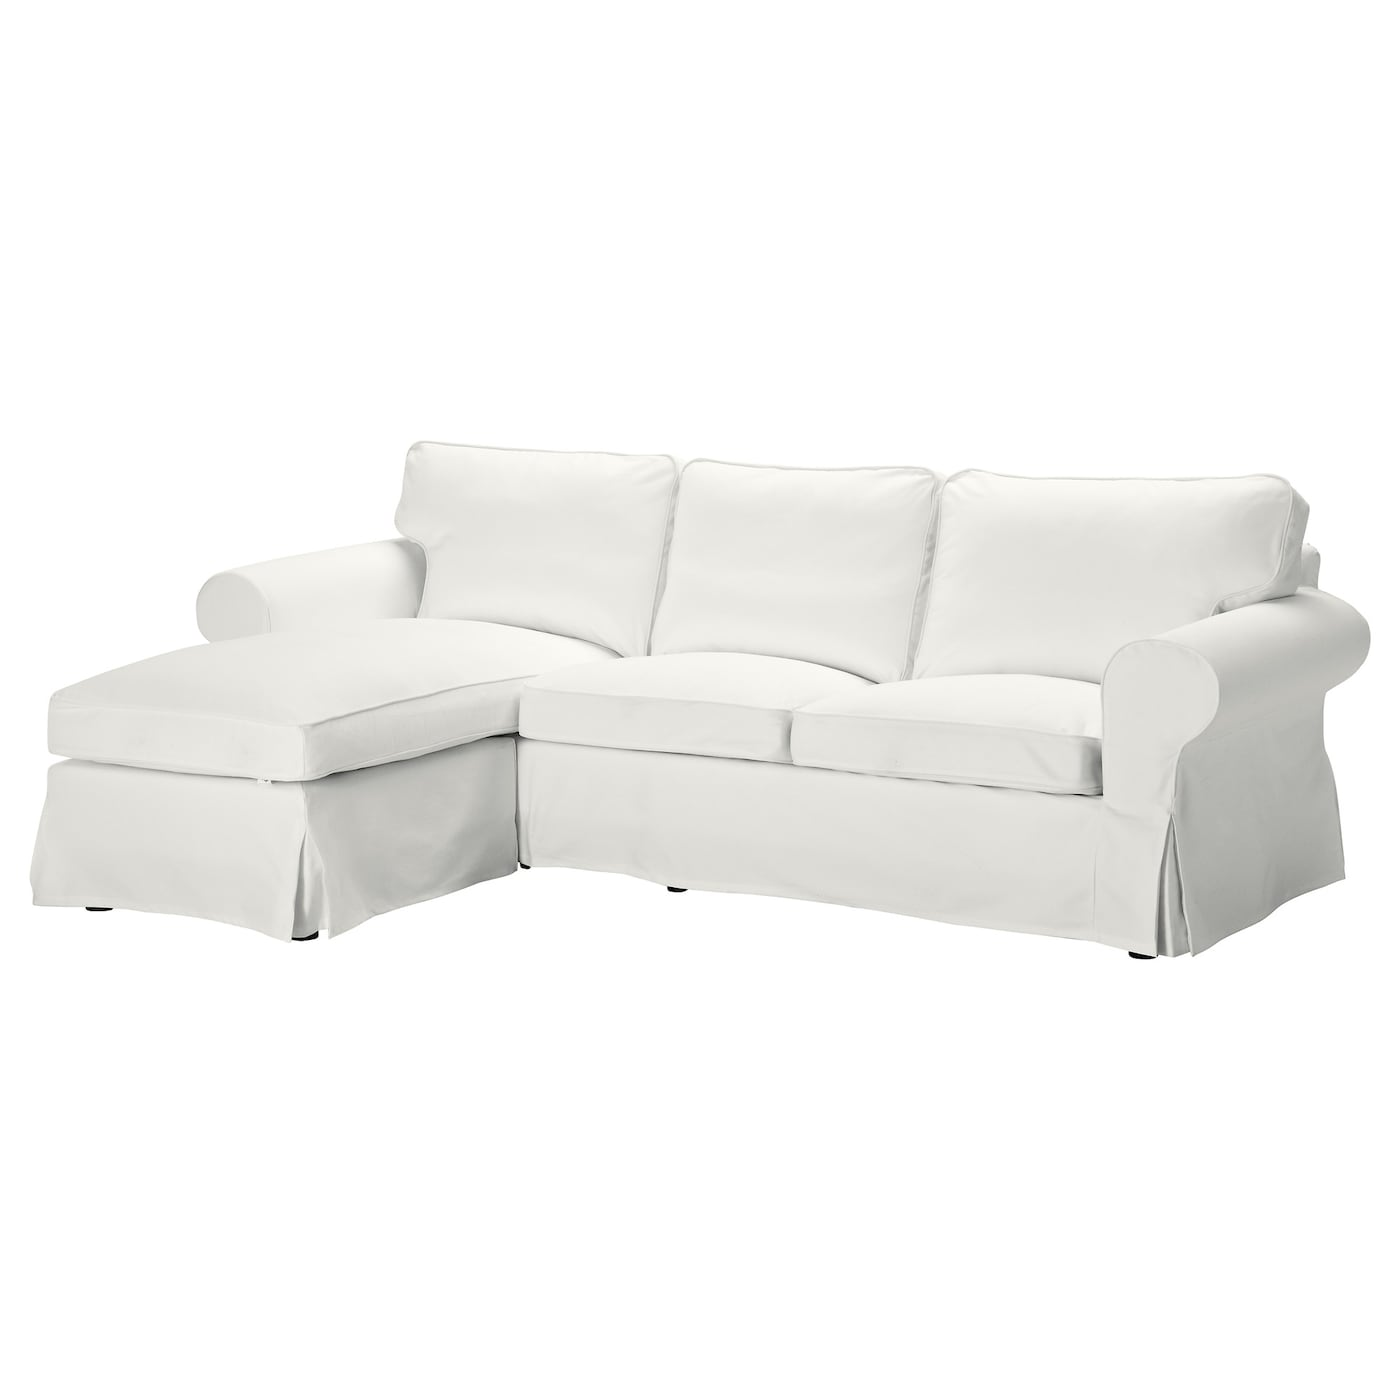 ektorp two seat sofa and chaise longue blekinge white ikea. Black Bedroom Furniture Sets. Home Design Ideas